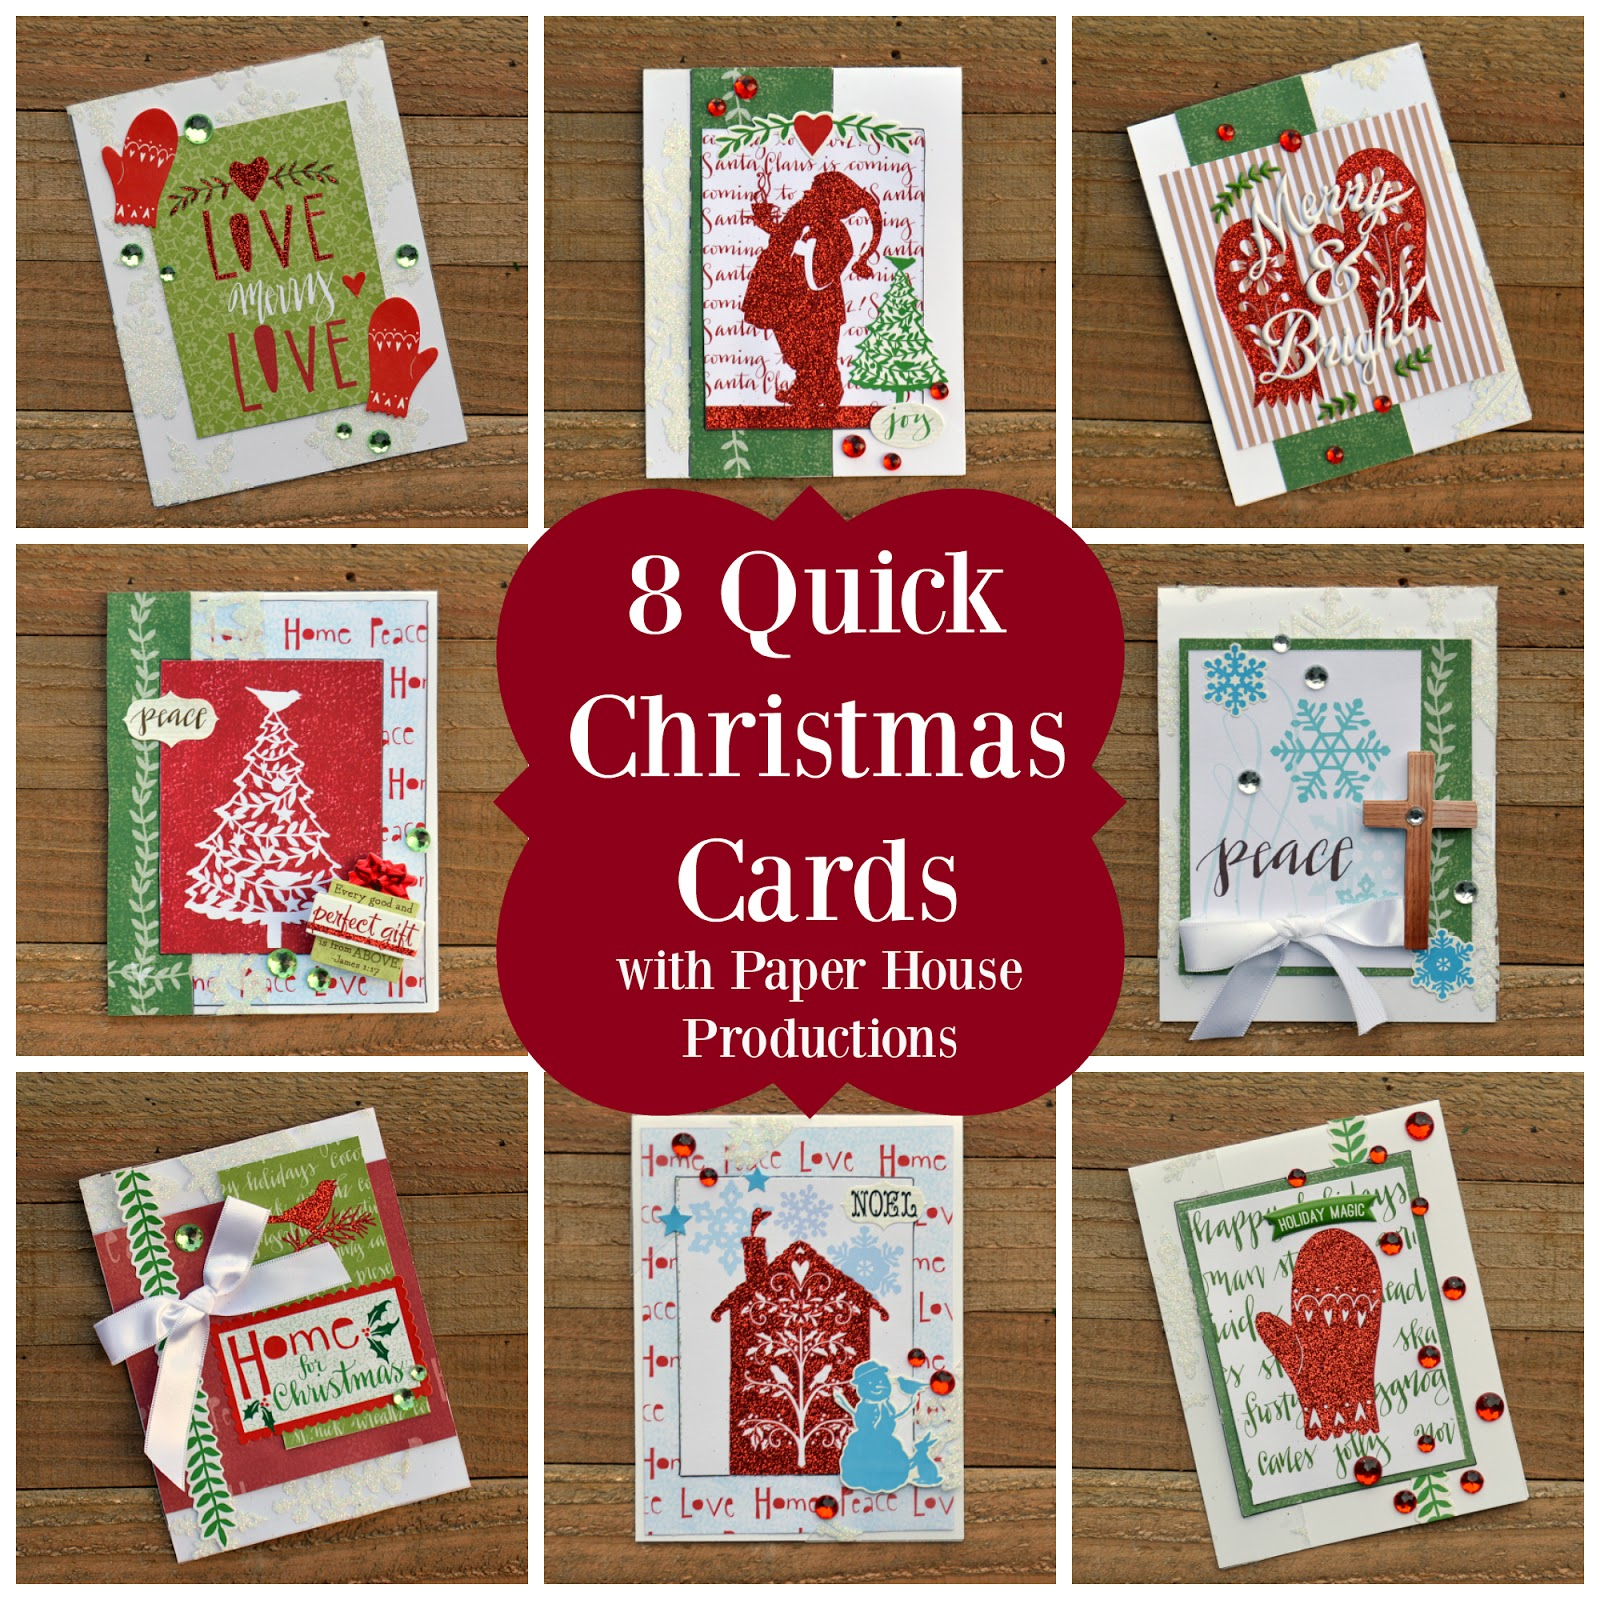 Scrapping with Christine: 8 Quick Christmas Cards with Process Video